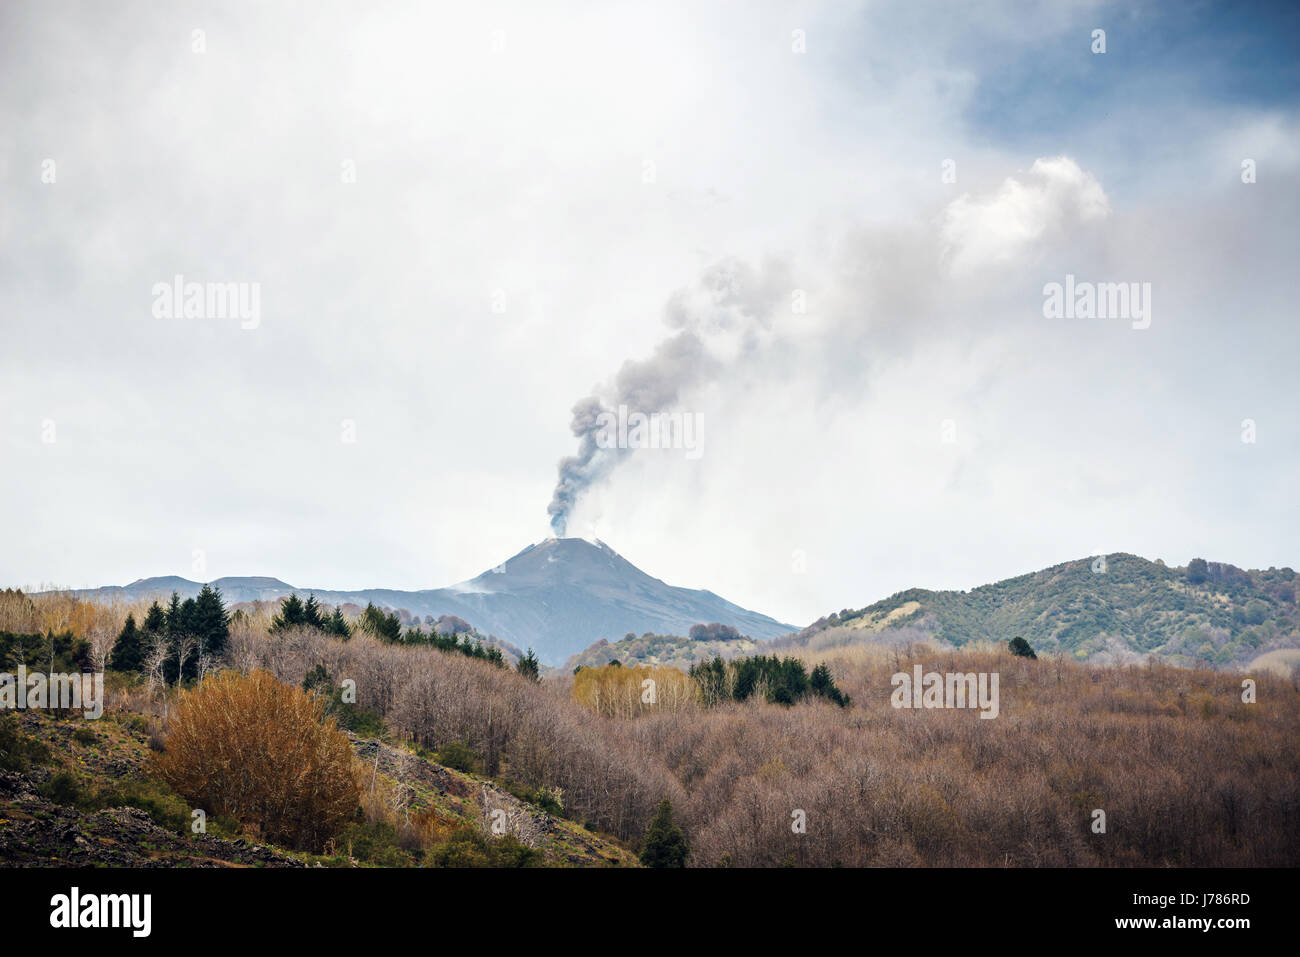 Mount Etna erupting in Sicily with clouds of ash, fields in foreground - Stock Image